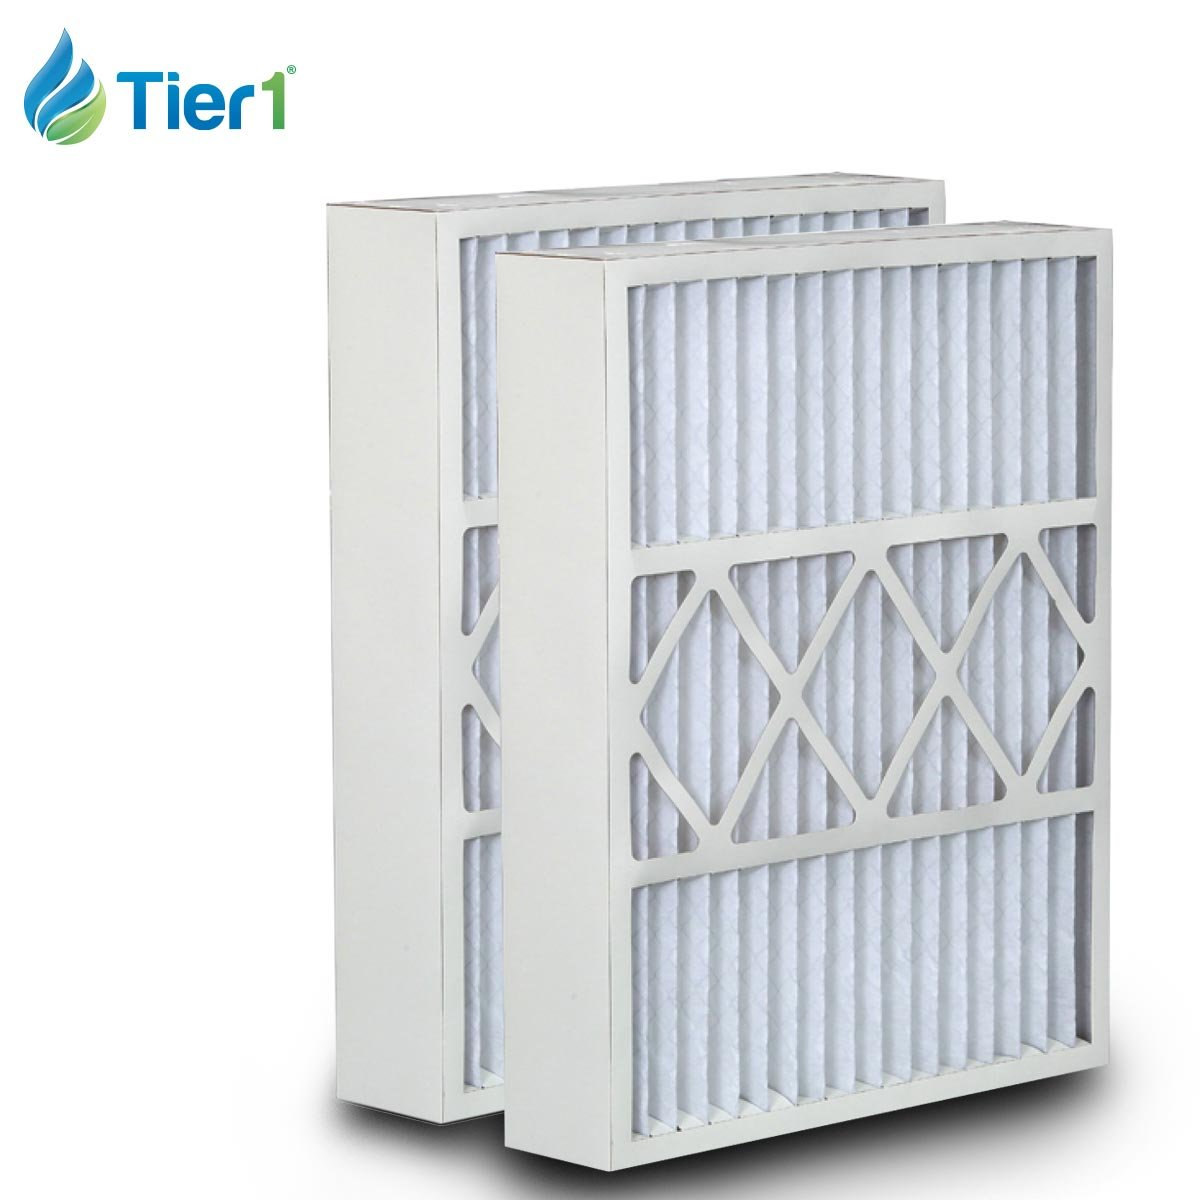 Tier1 Replacement for Comfort Plus 16x26x5 Merv 11 Air Filter 2 Pack